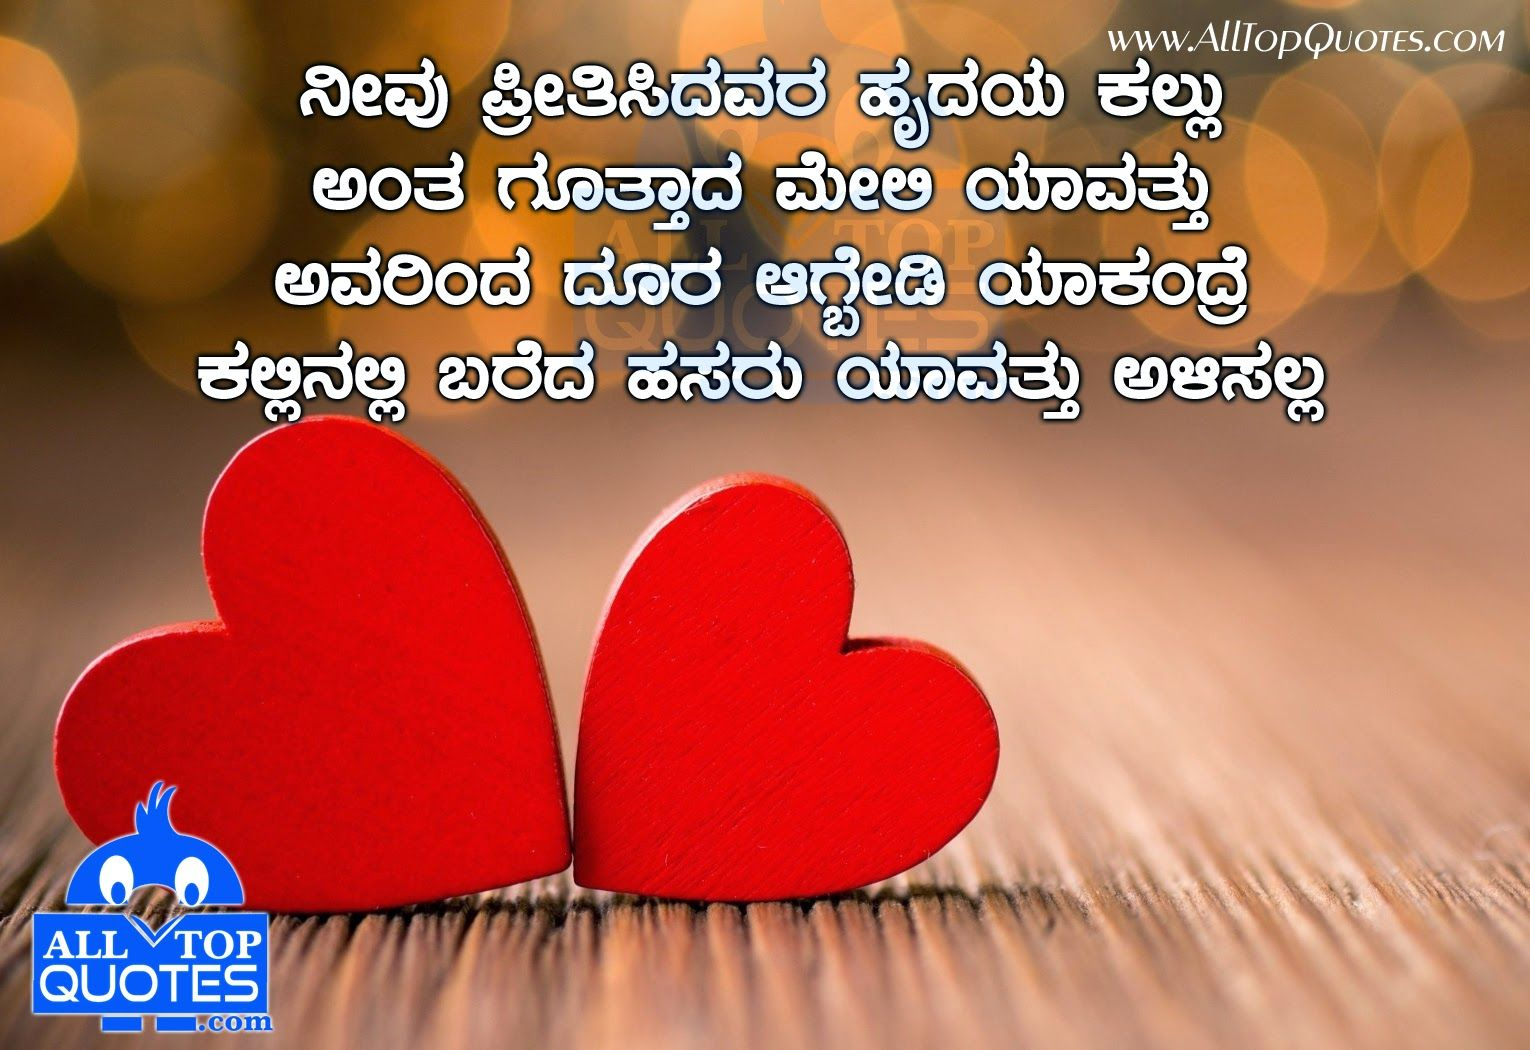 Love feeling quotes love feeling quotes with - Best Love Quotes In Kannada 5vfzb1tnq In Love Quotes Pinterest